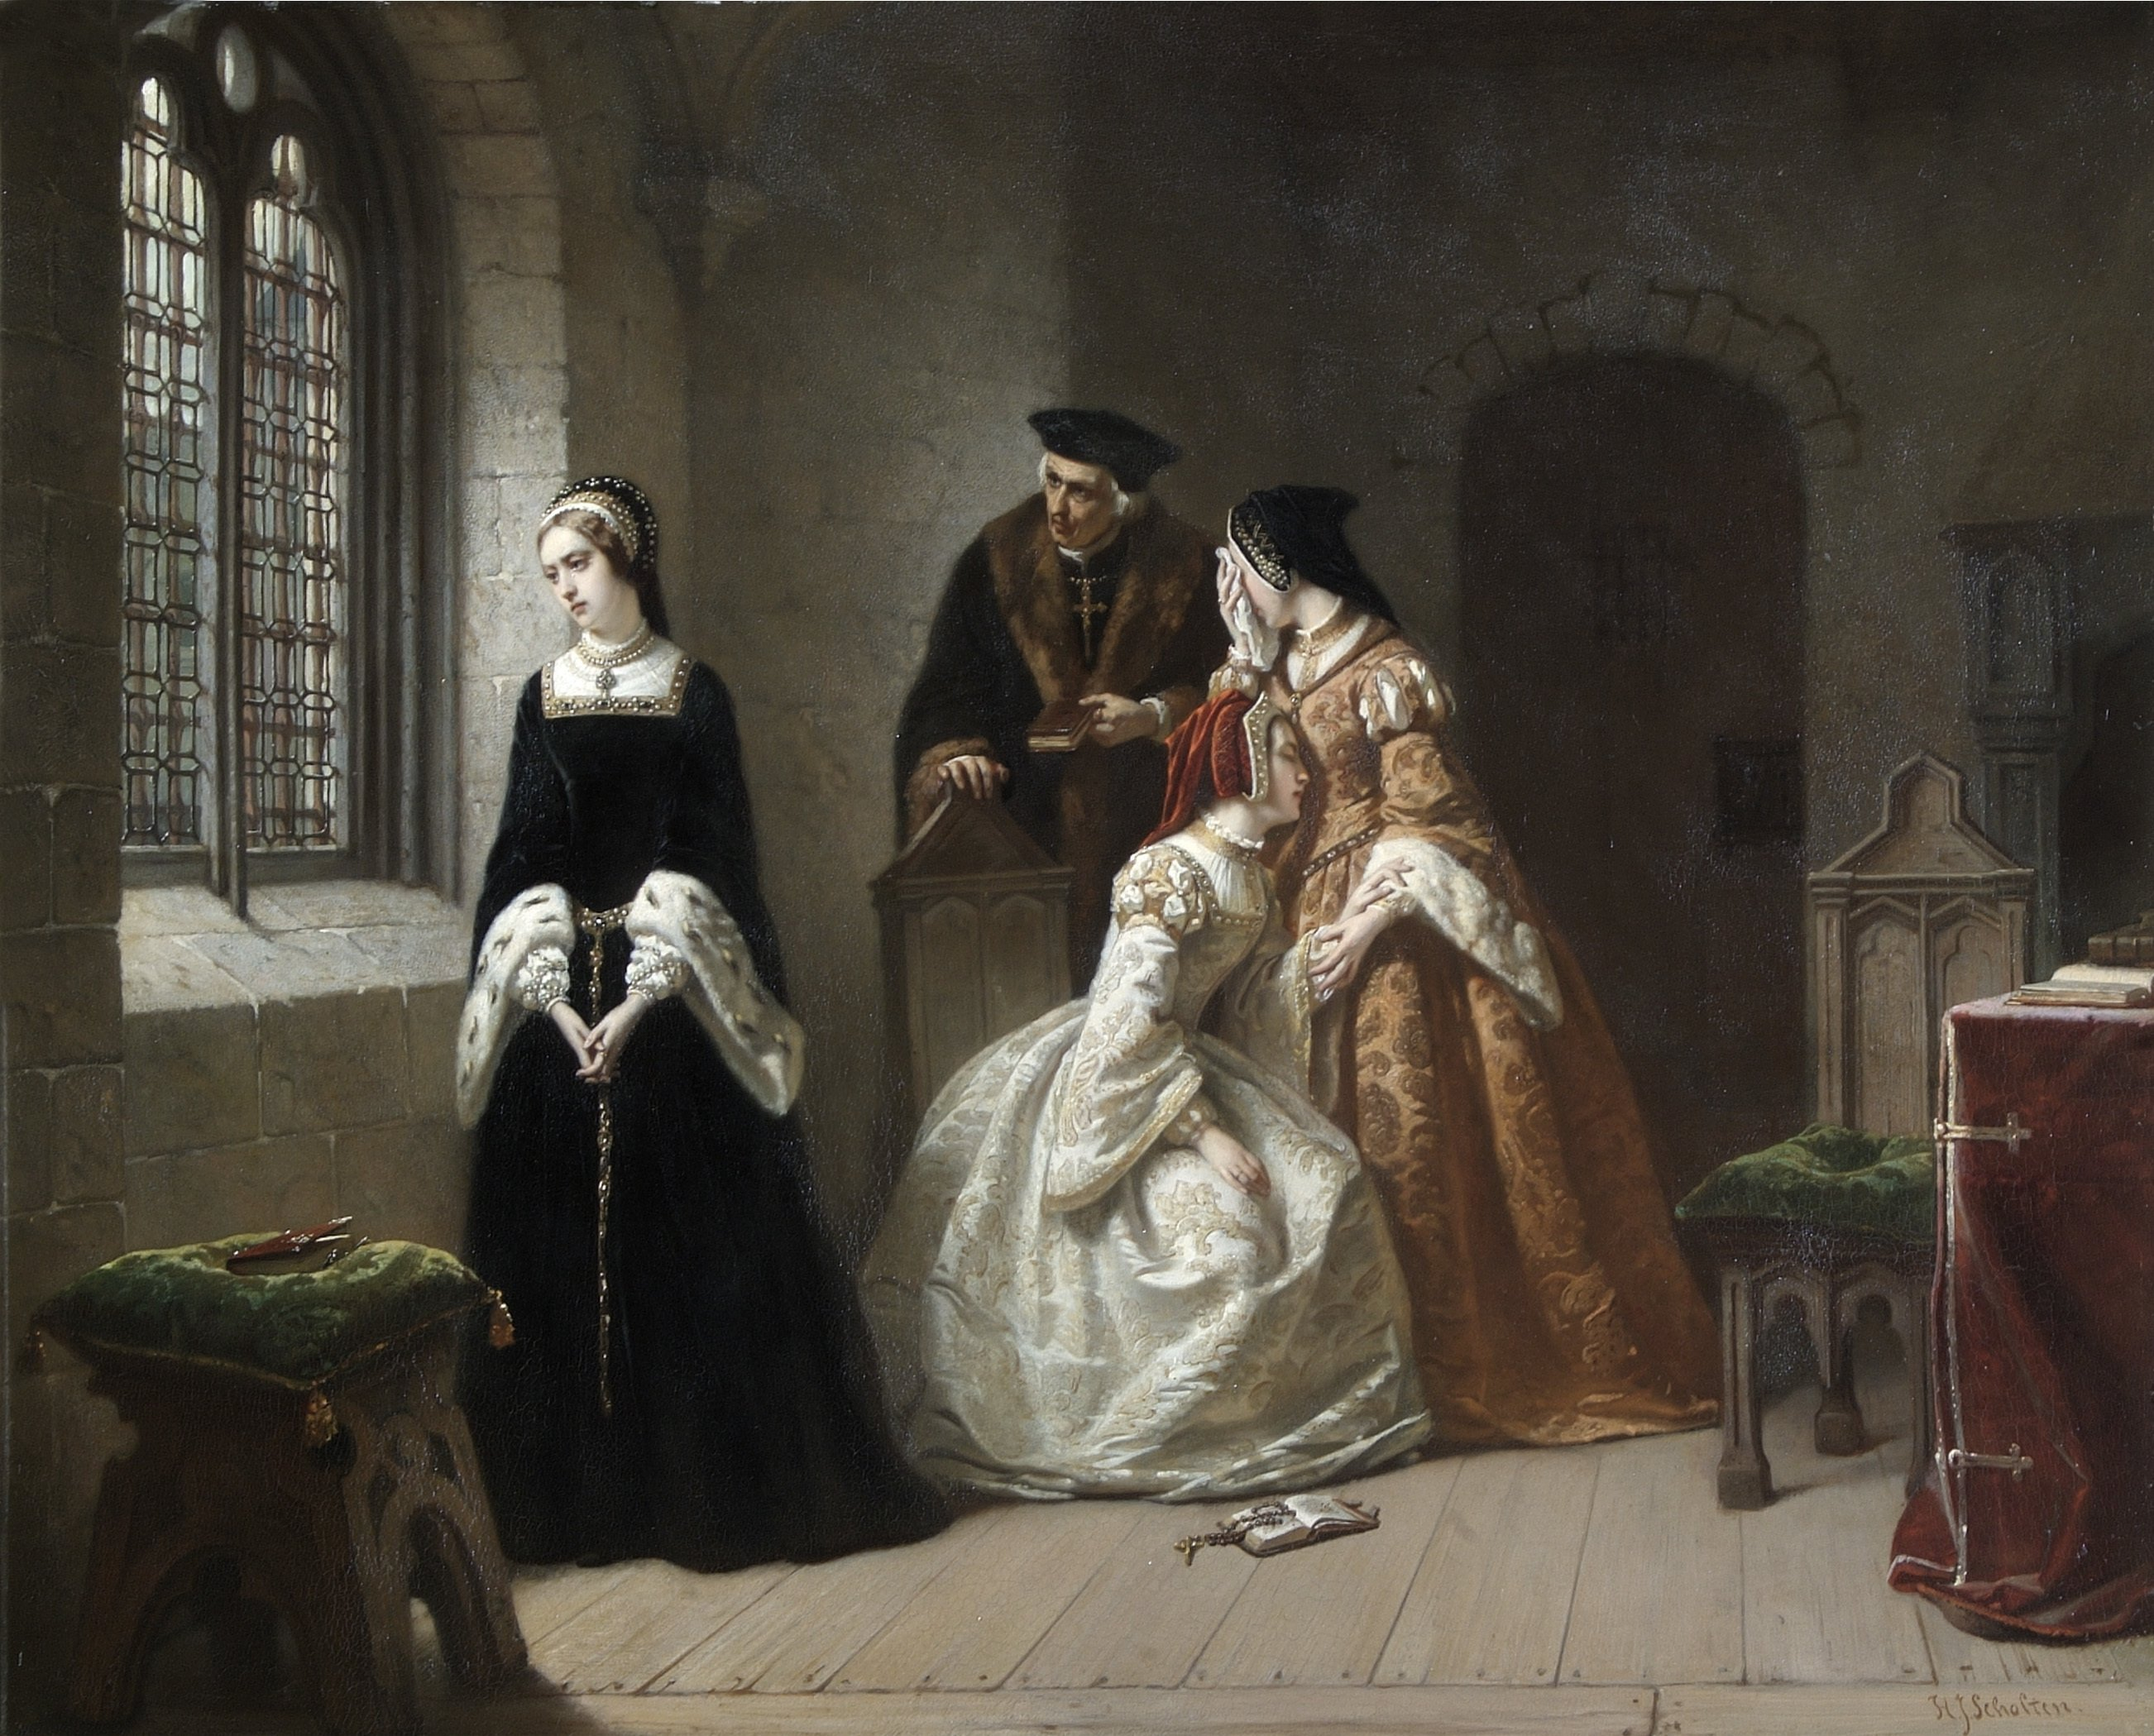 A painting of Lady Jane Grey standing by a window in the Tower of London, with a Bishop and 2 courtiers in the background